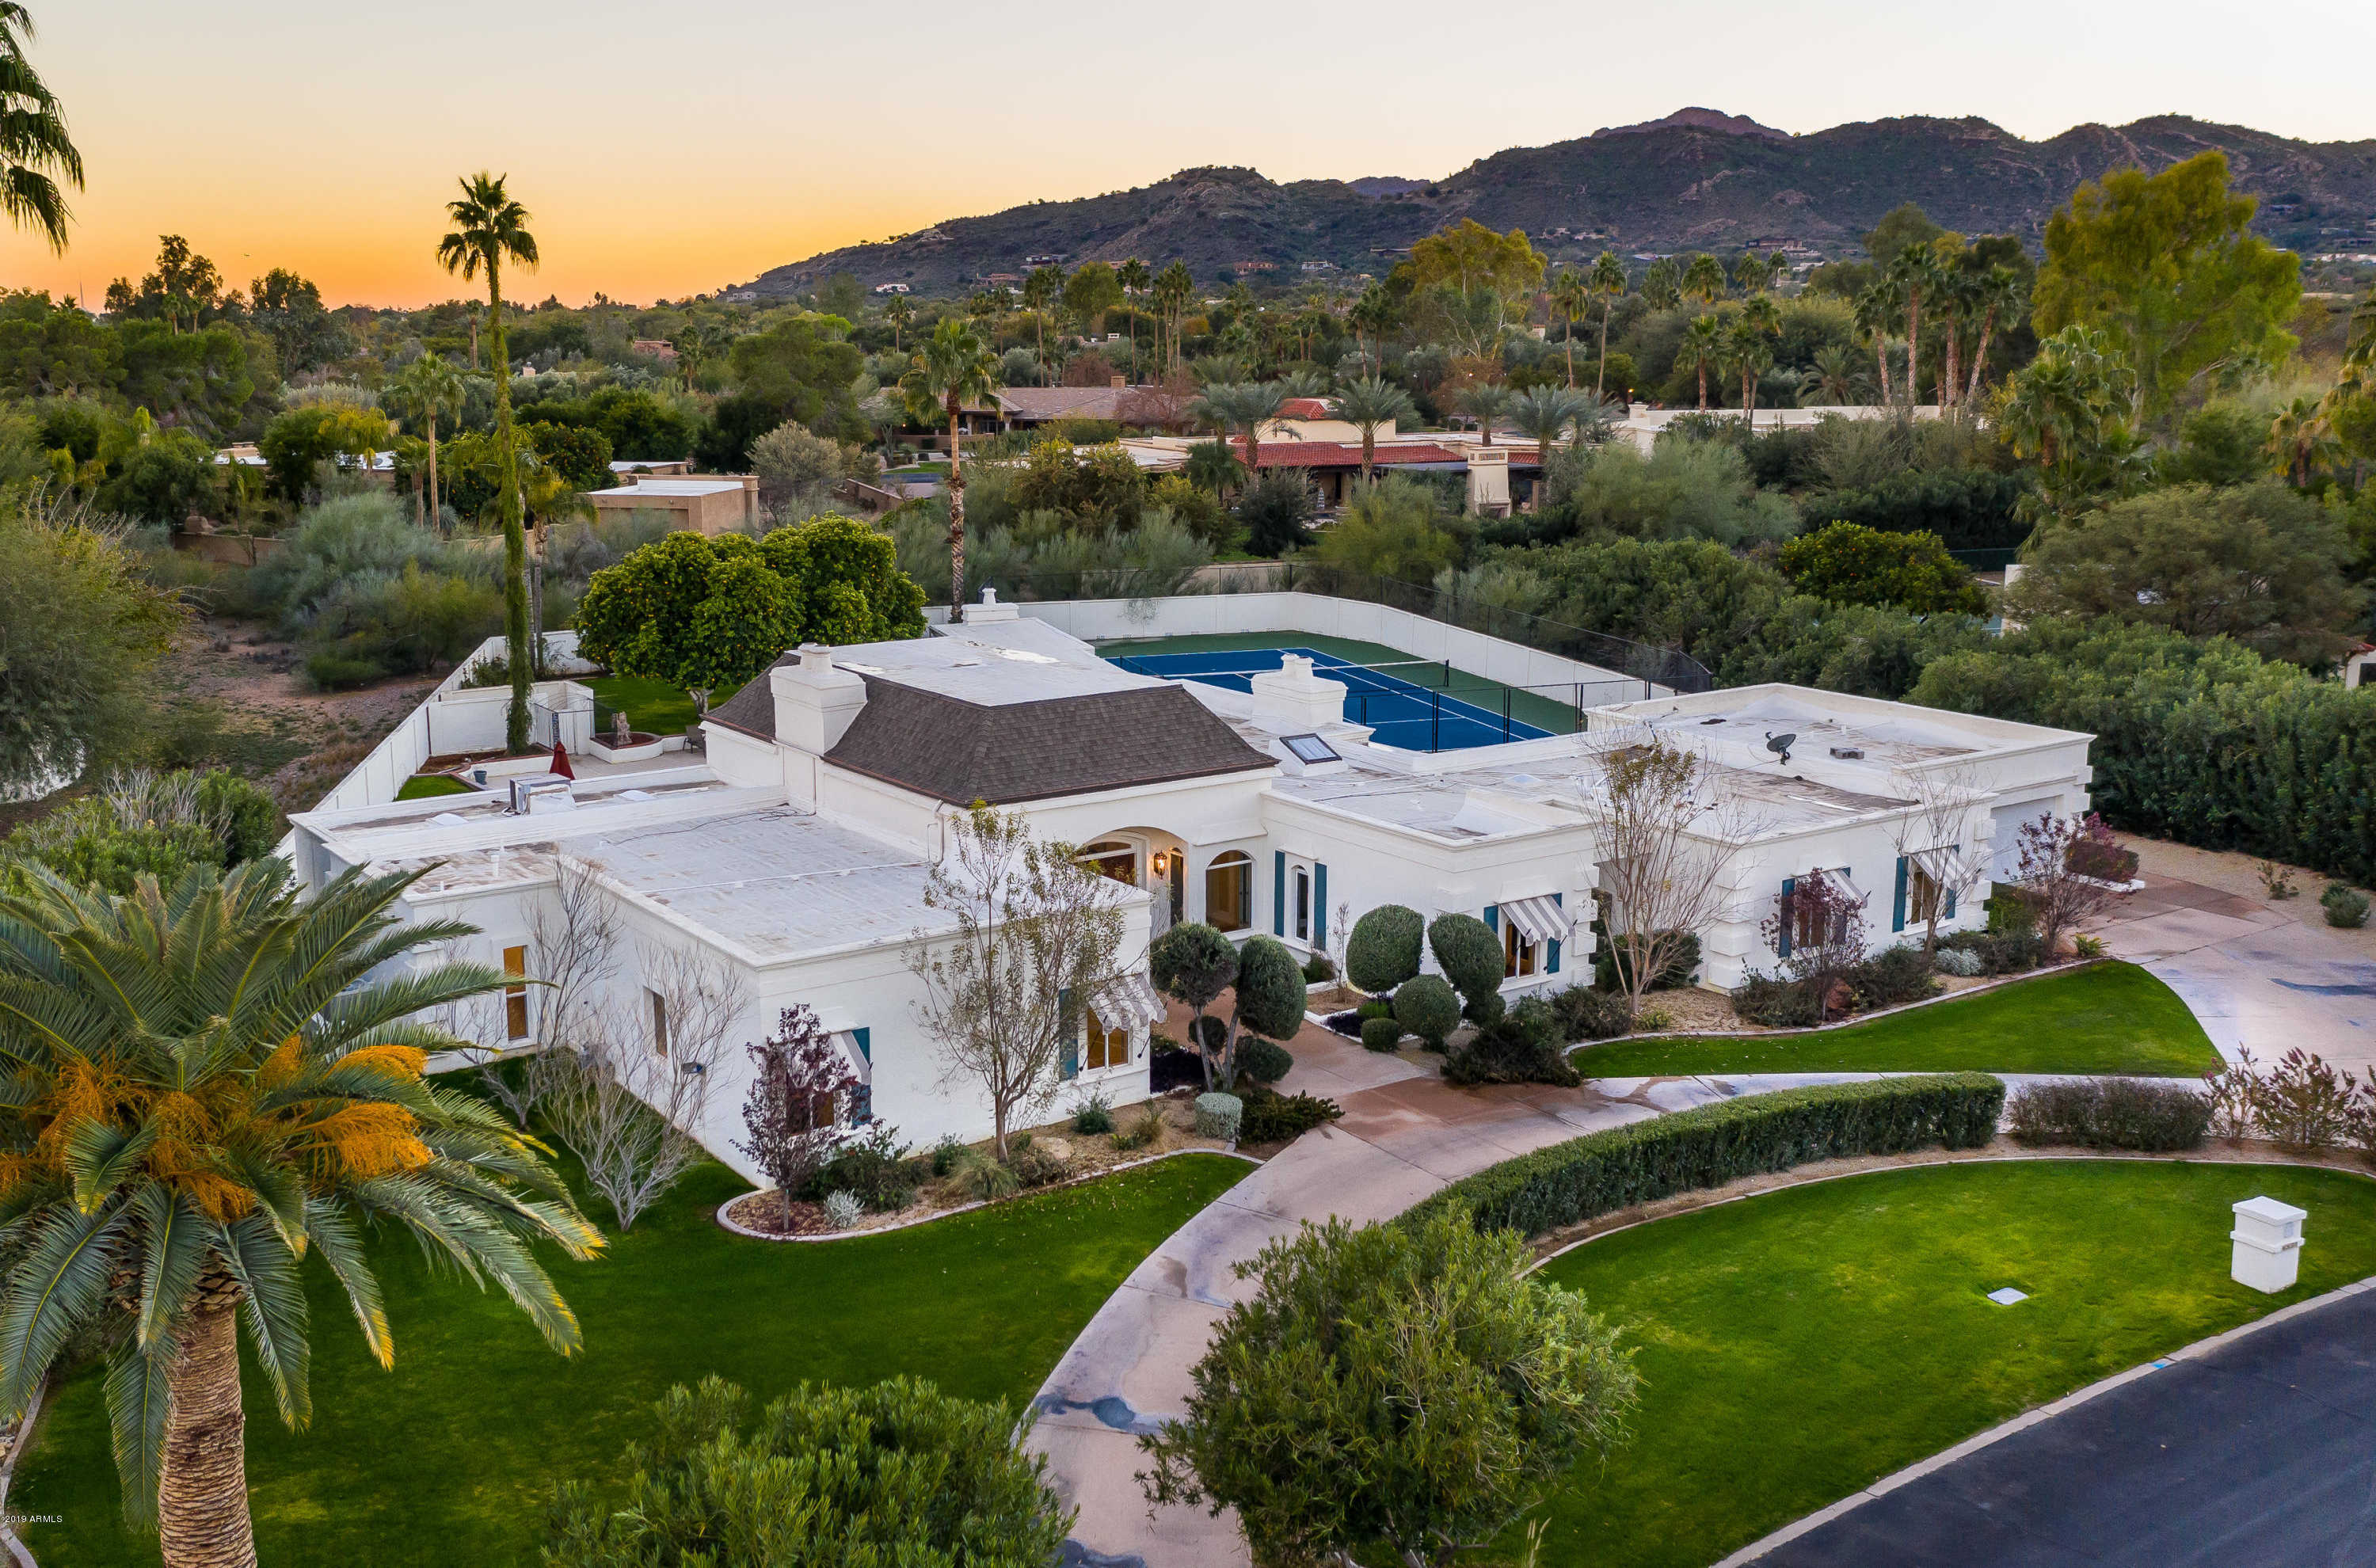 $2,150,000 - 5Br/4Ba - Home for Sale in Camelback Country Club Estates, Paradise Valley